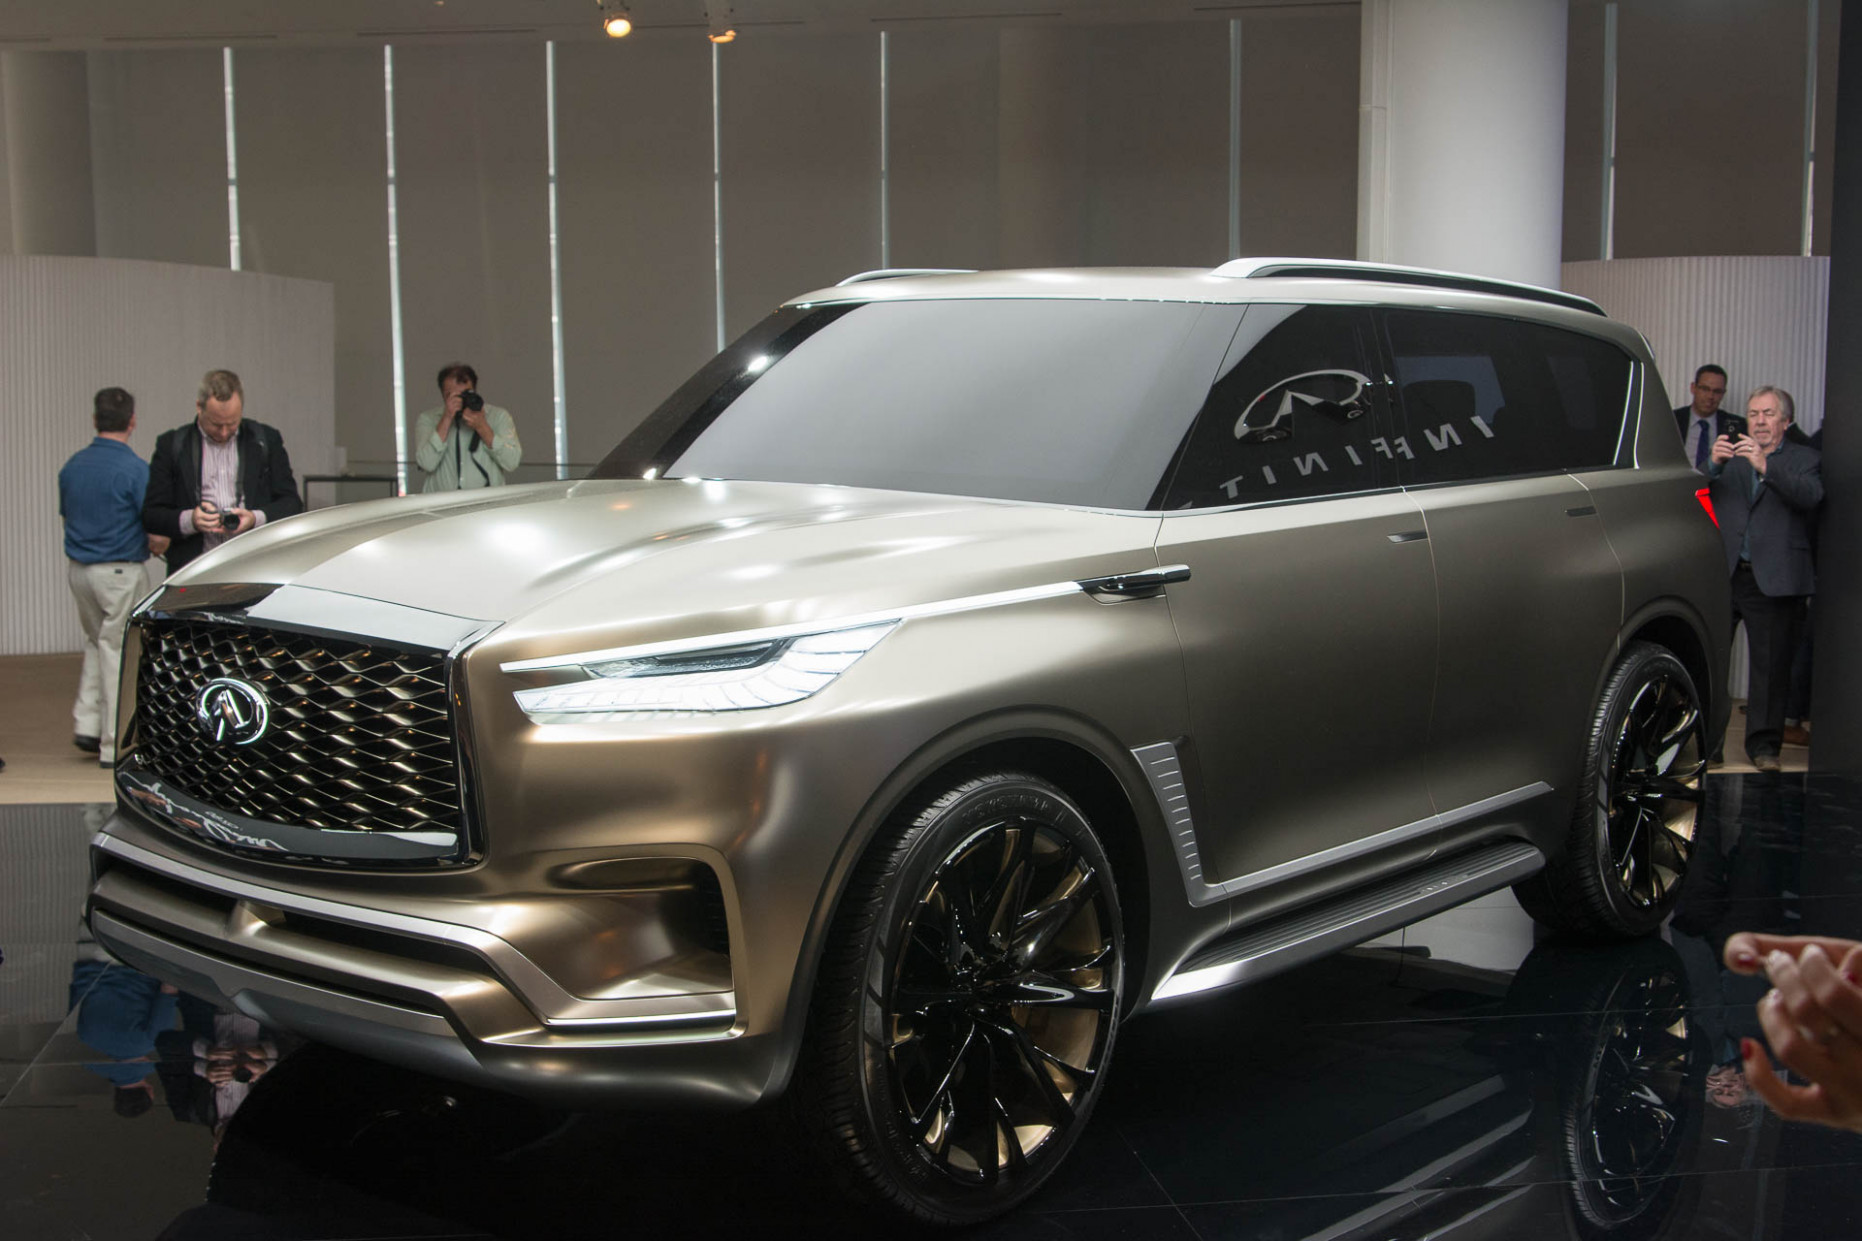 Exterior and Interior When Does The 2022 Infiniti Qx80 Come Out